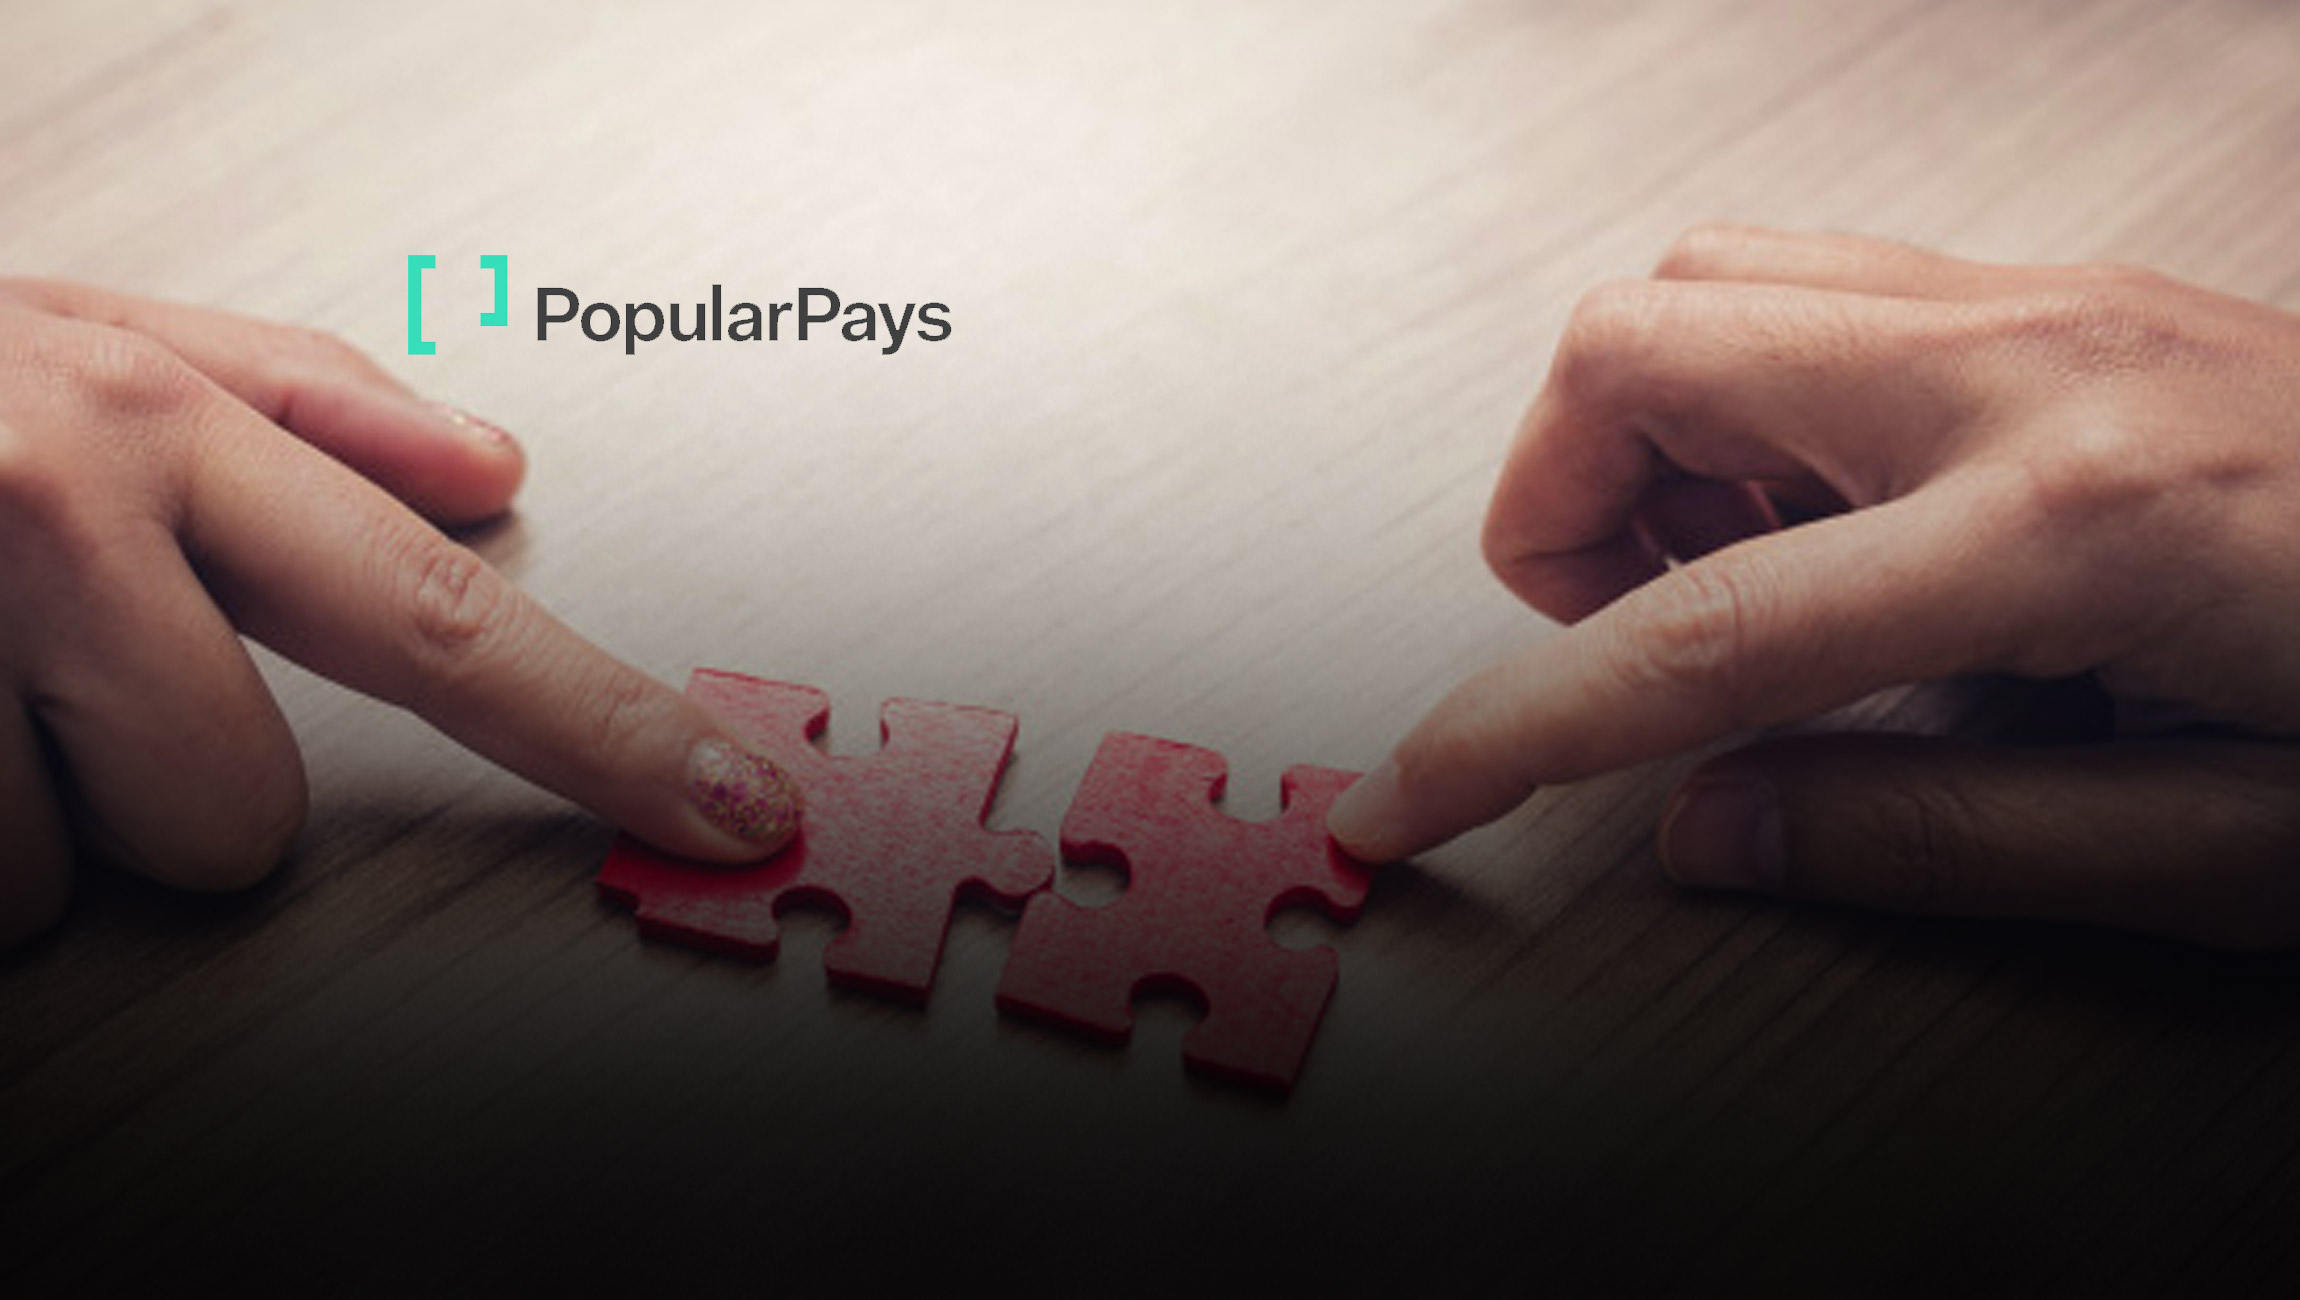 Popular Pays Announces Partner Program and Collaboration with Group RFZ